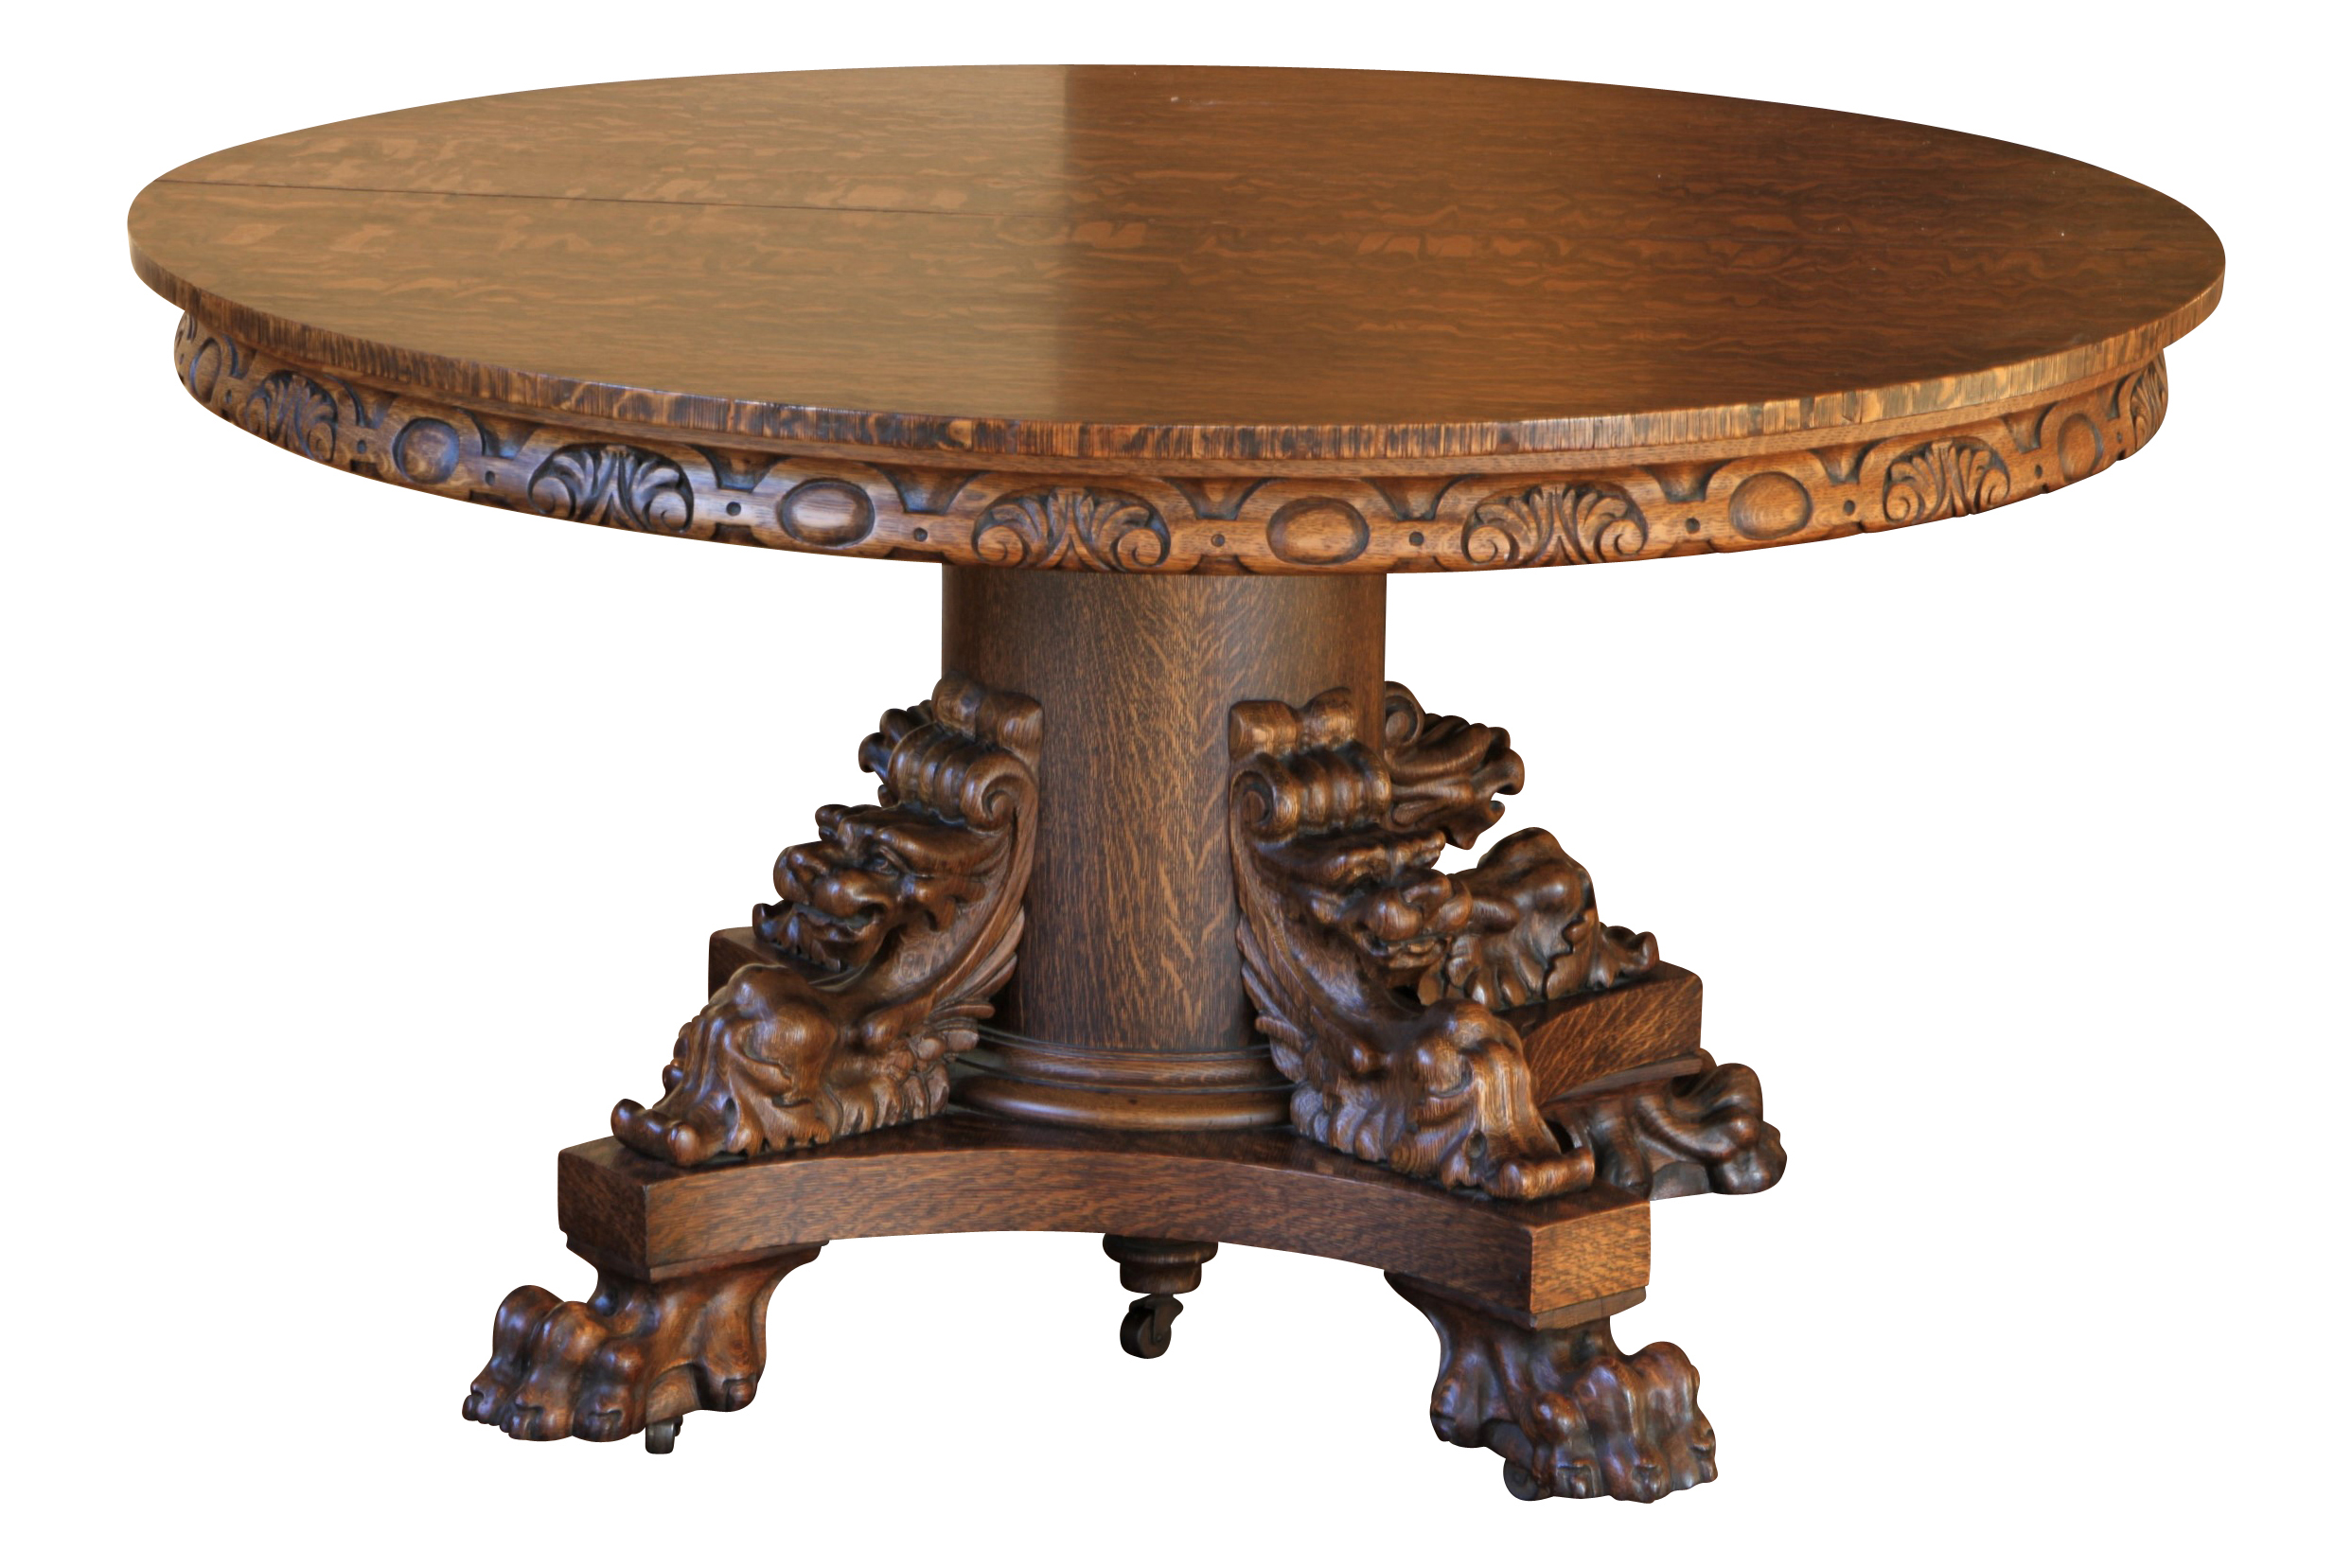 An American Quarter Sawn Oak Dining Room Table With